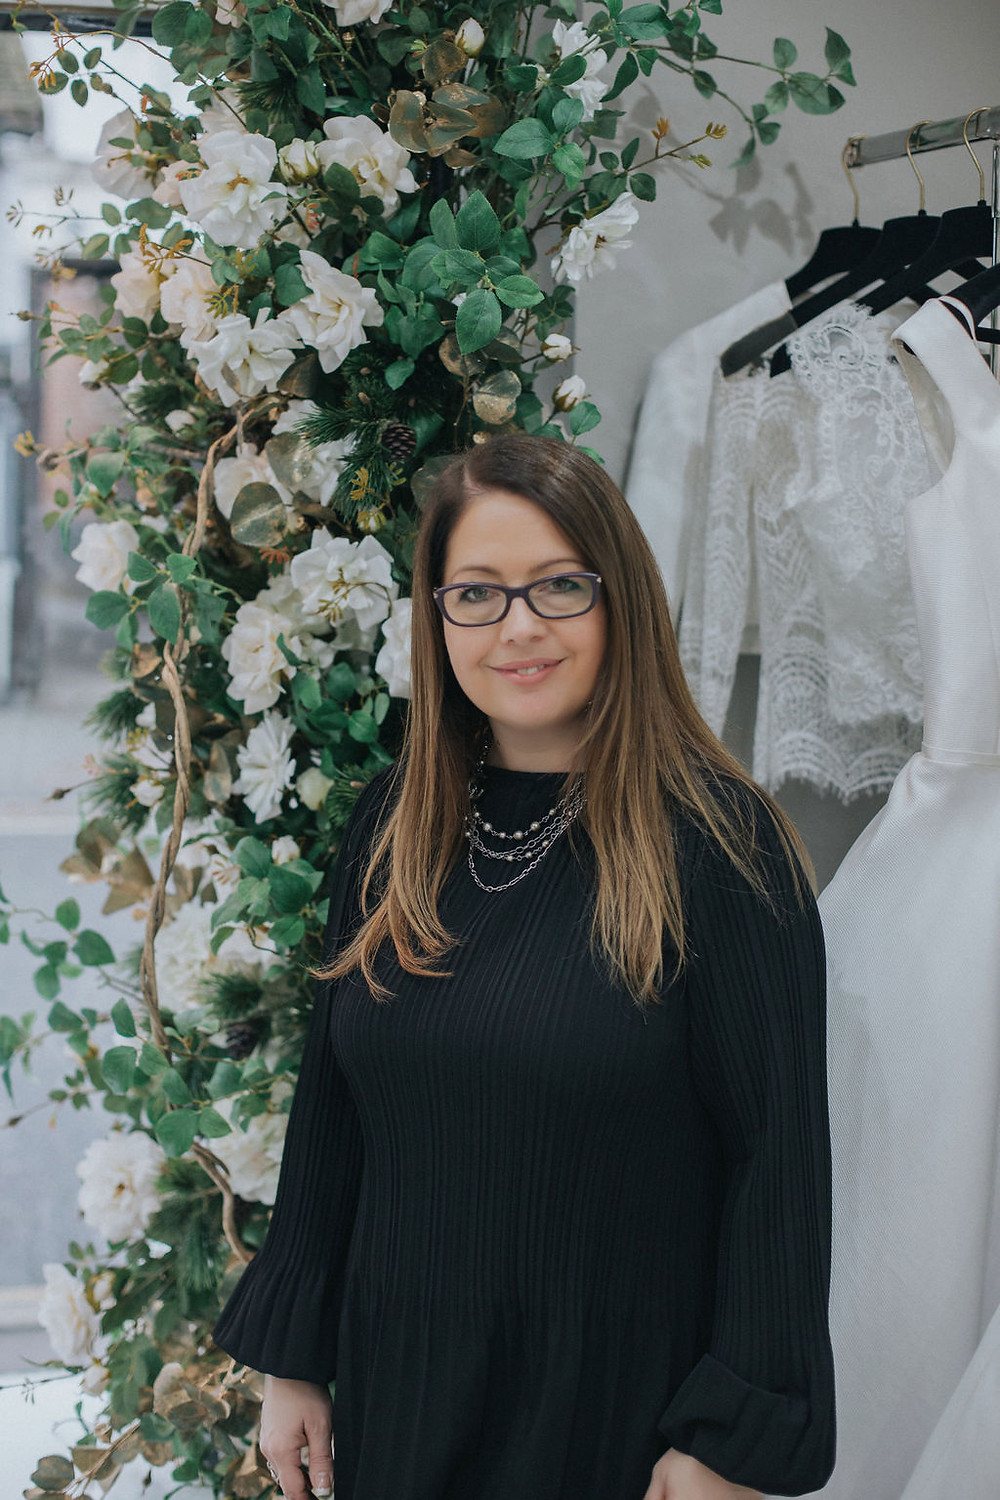 Suzanne Neville Bridal Designer Faux Flower Weddings Essex